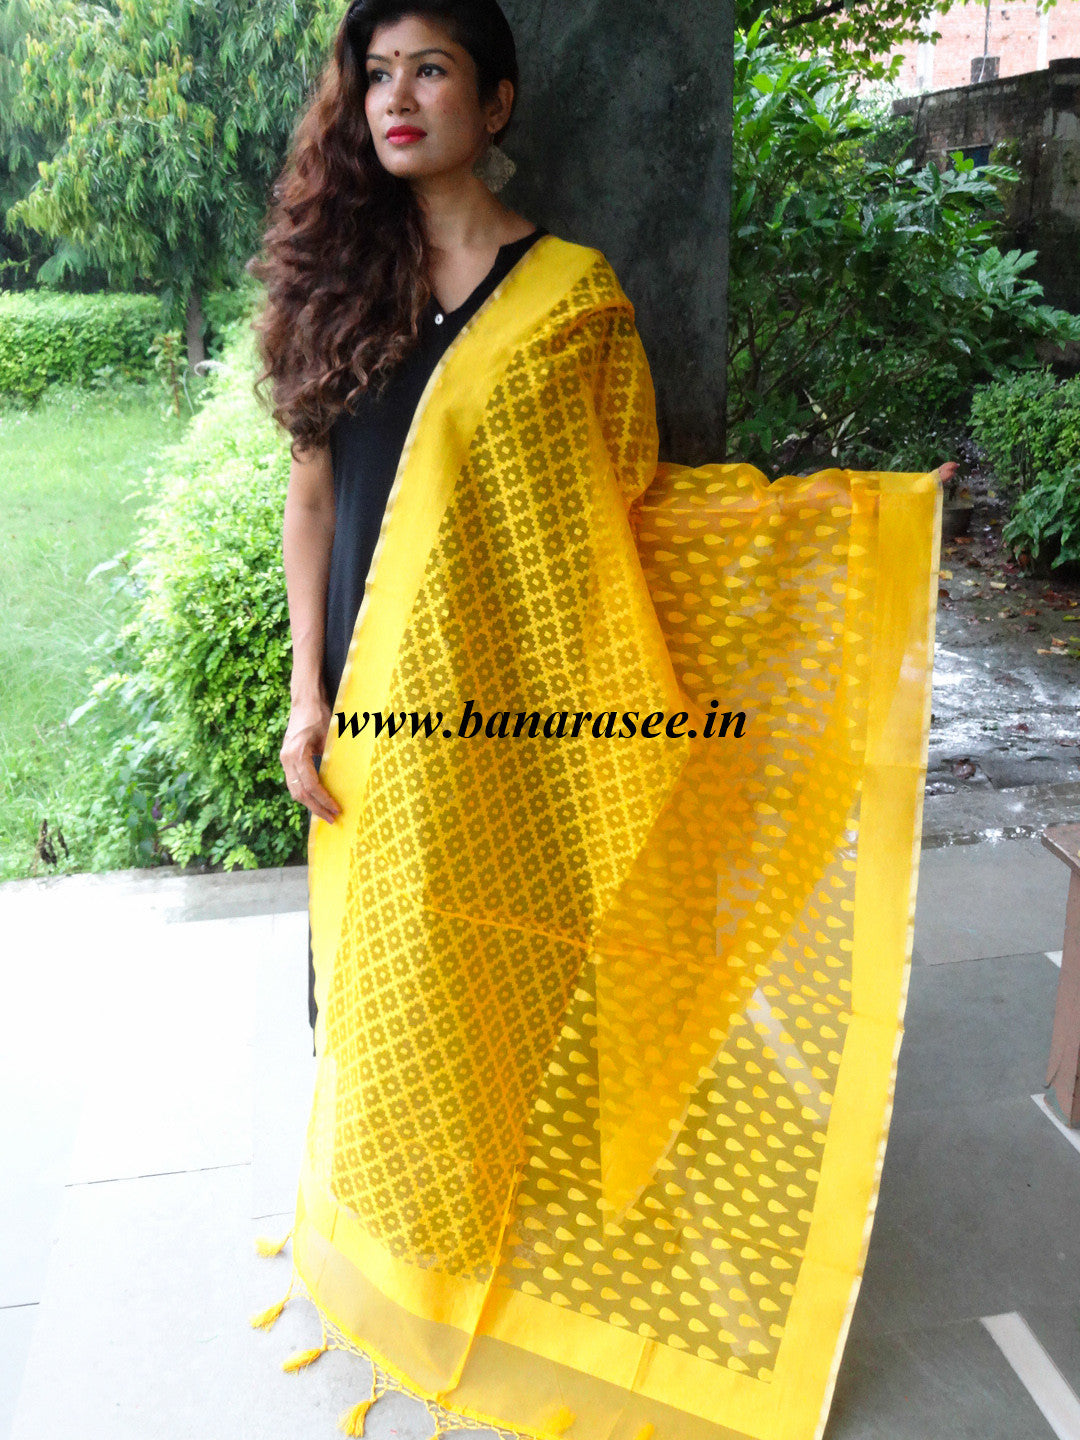 Banarasee/ Banarasi Net patterned Dupatta-Yellow